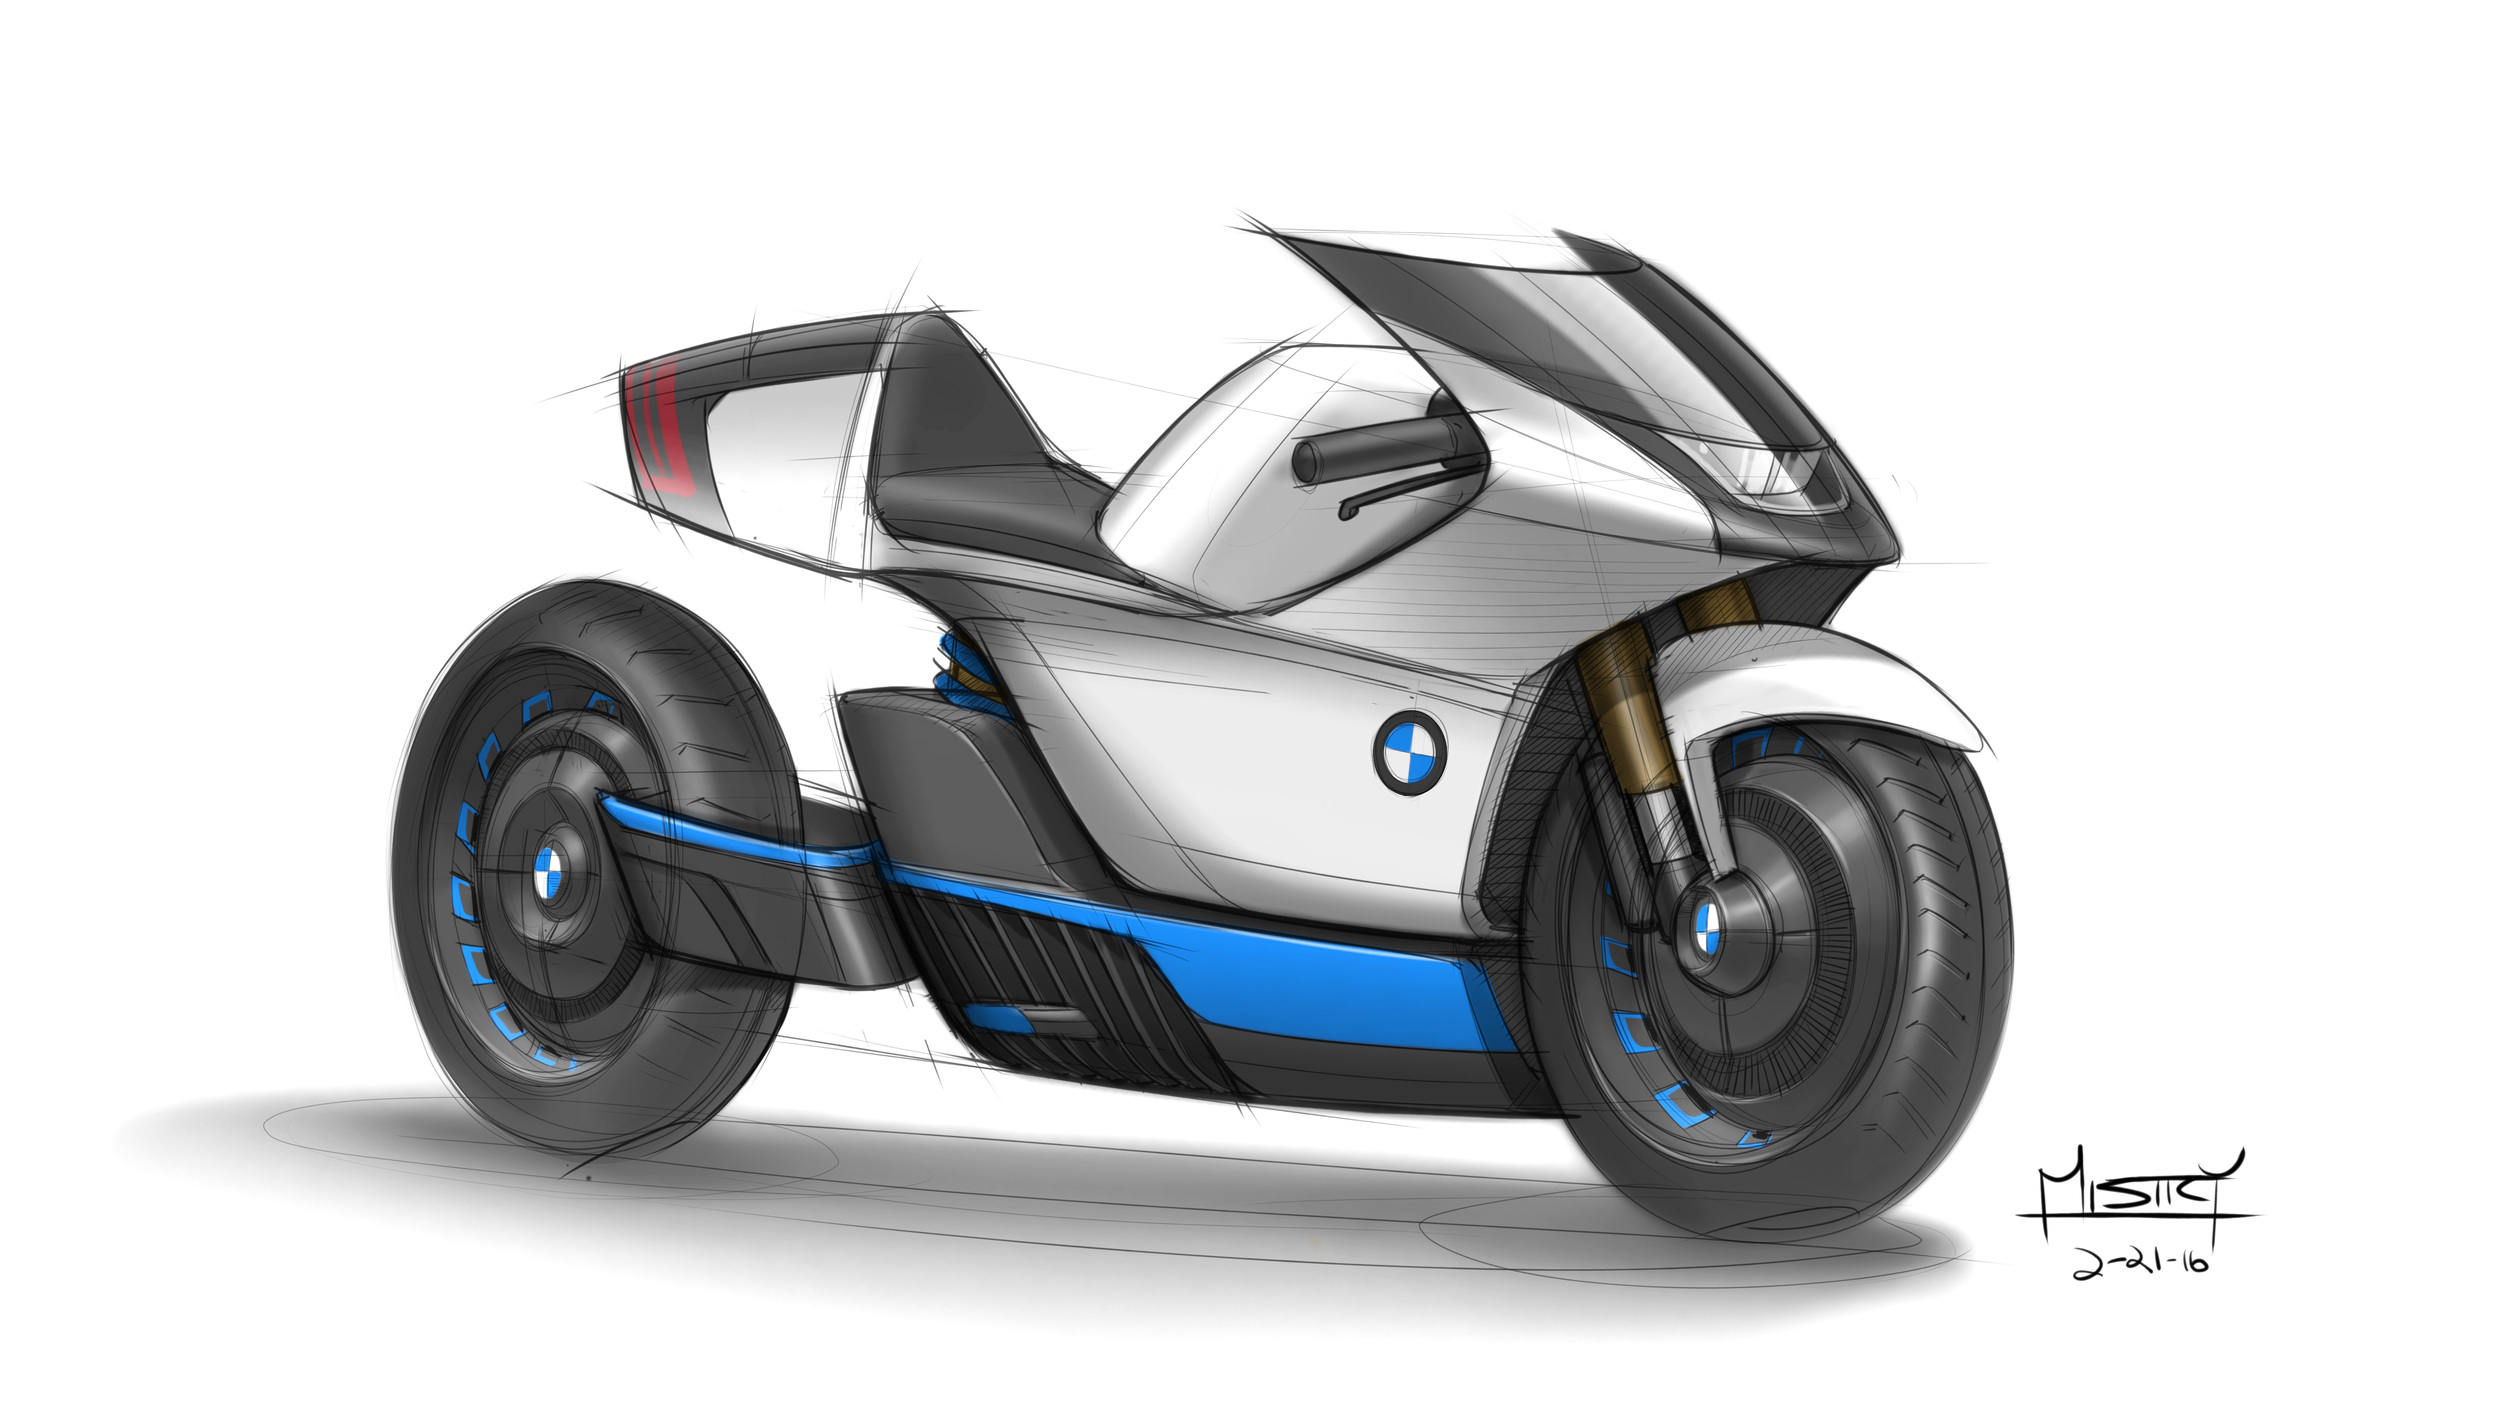 BMW-bike-main.jpg